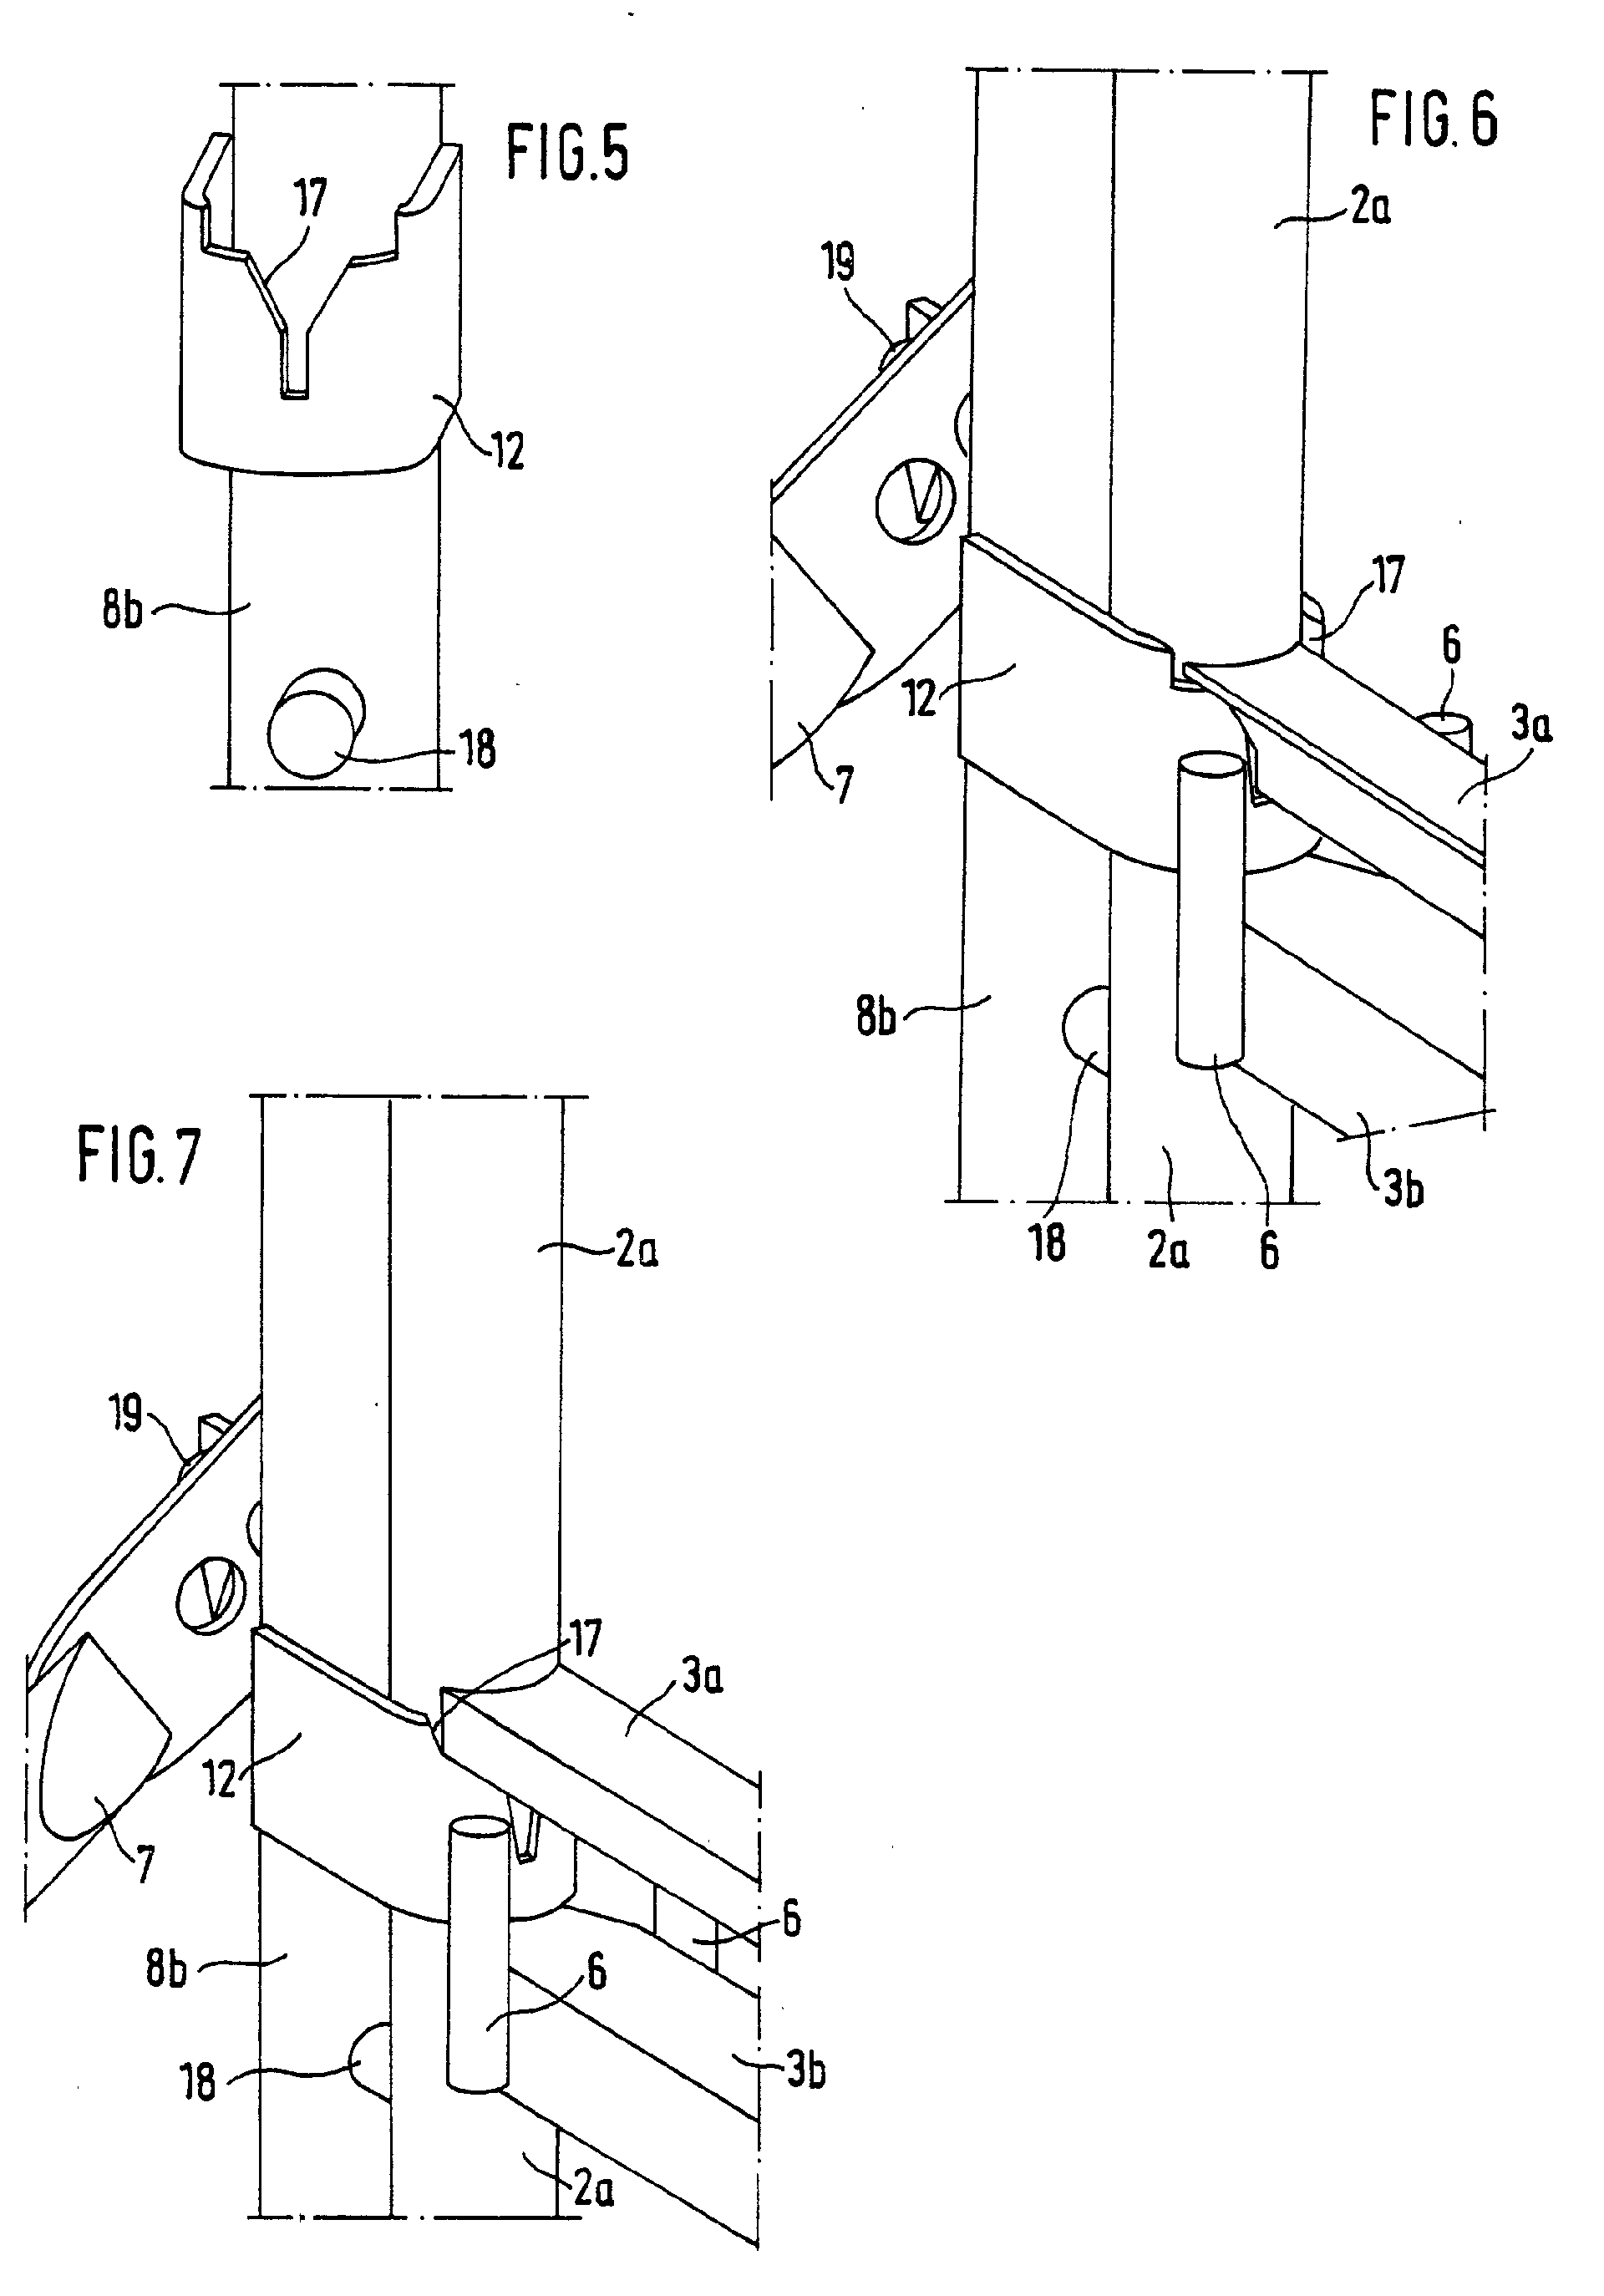 upright scaffold parts